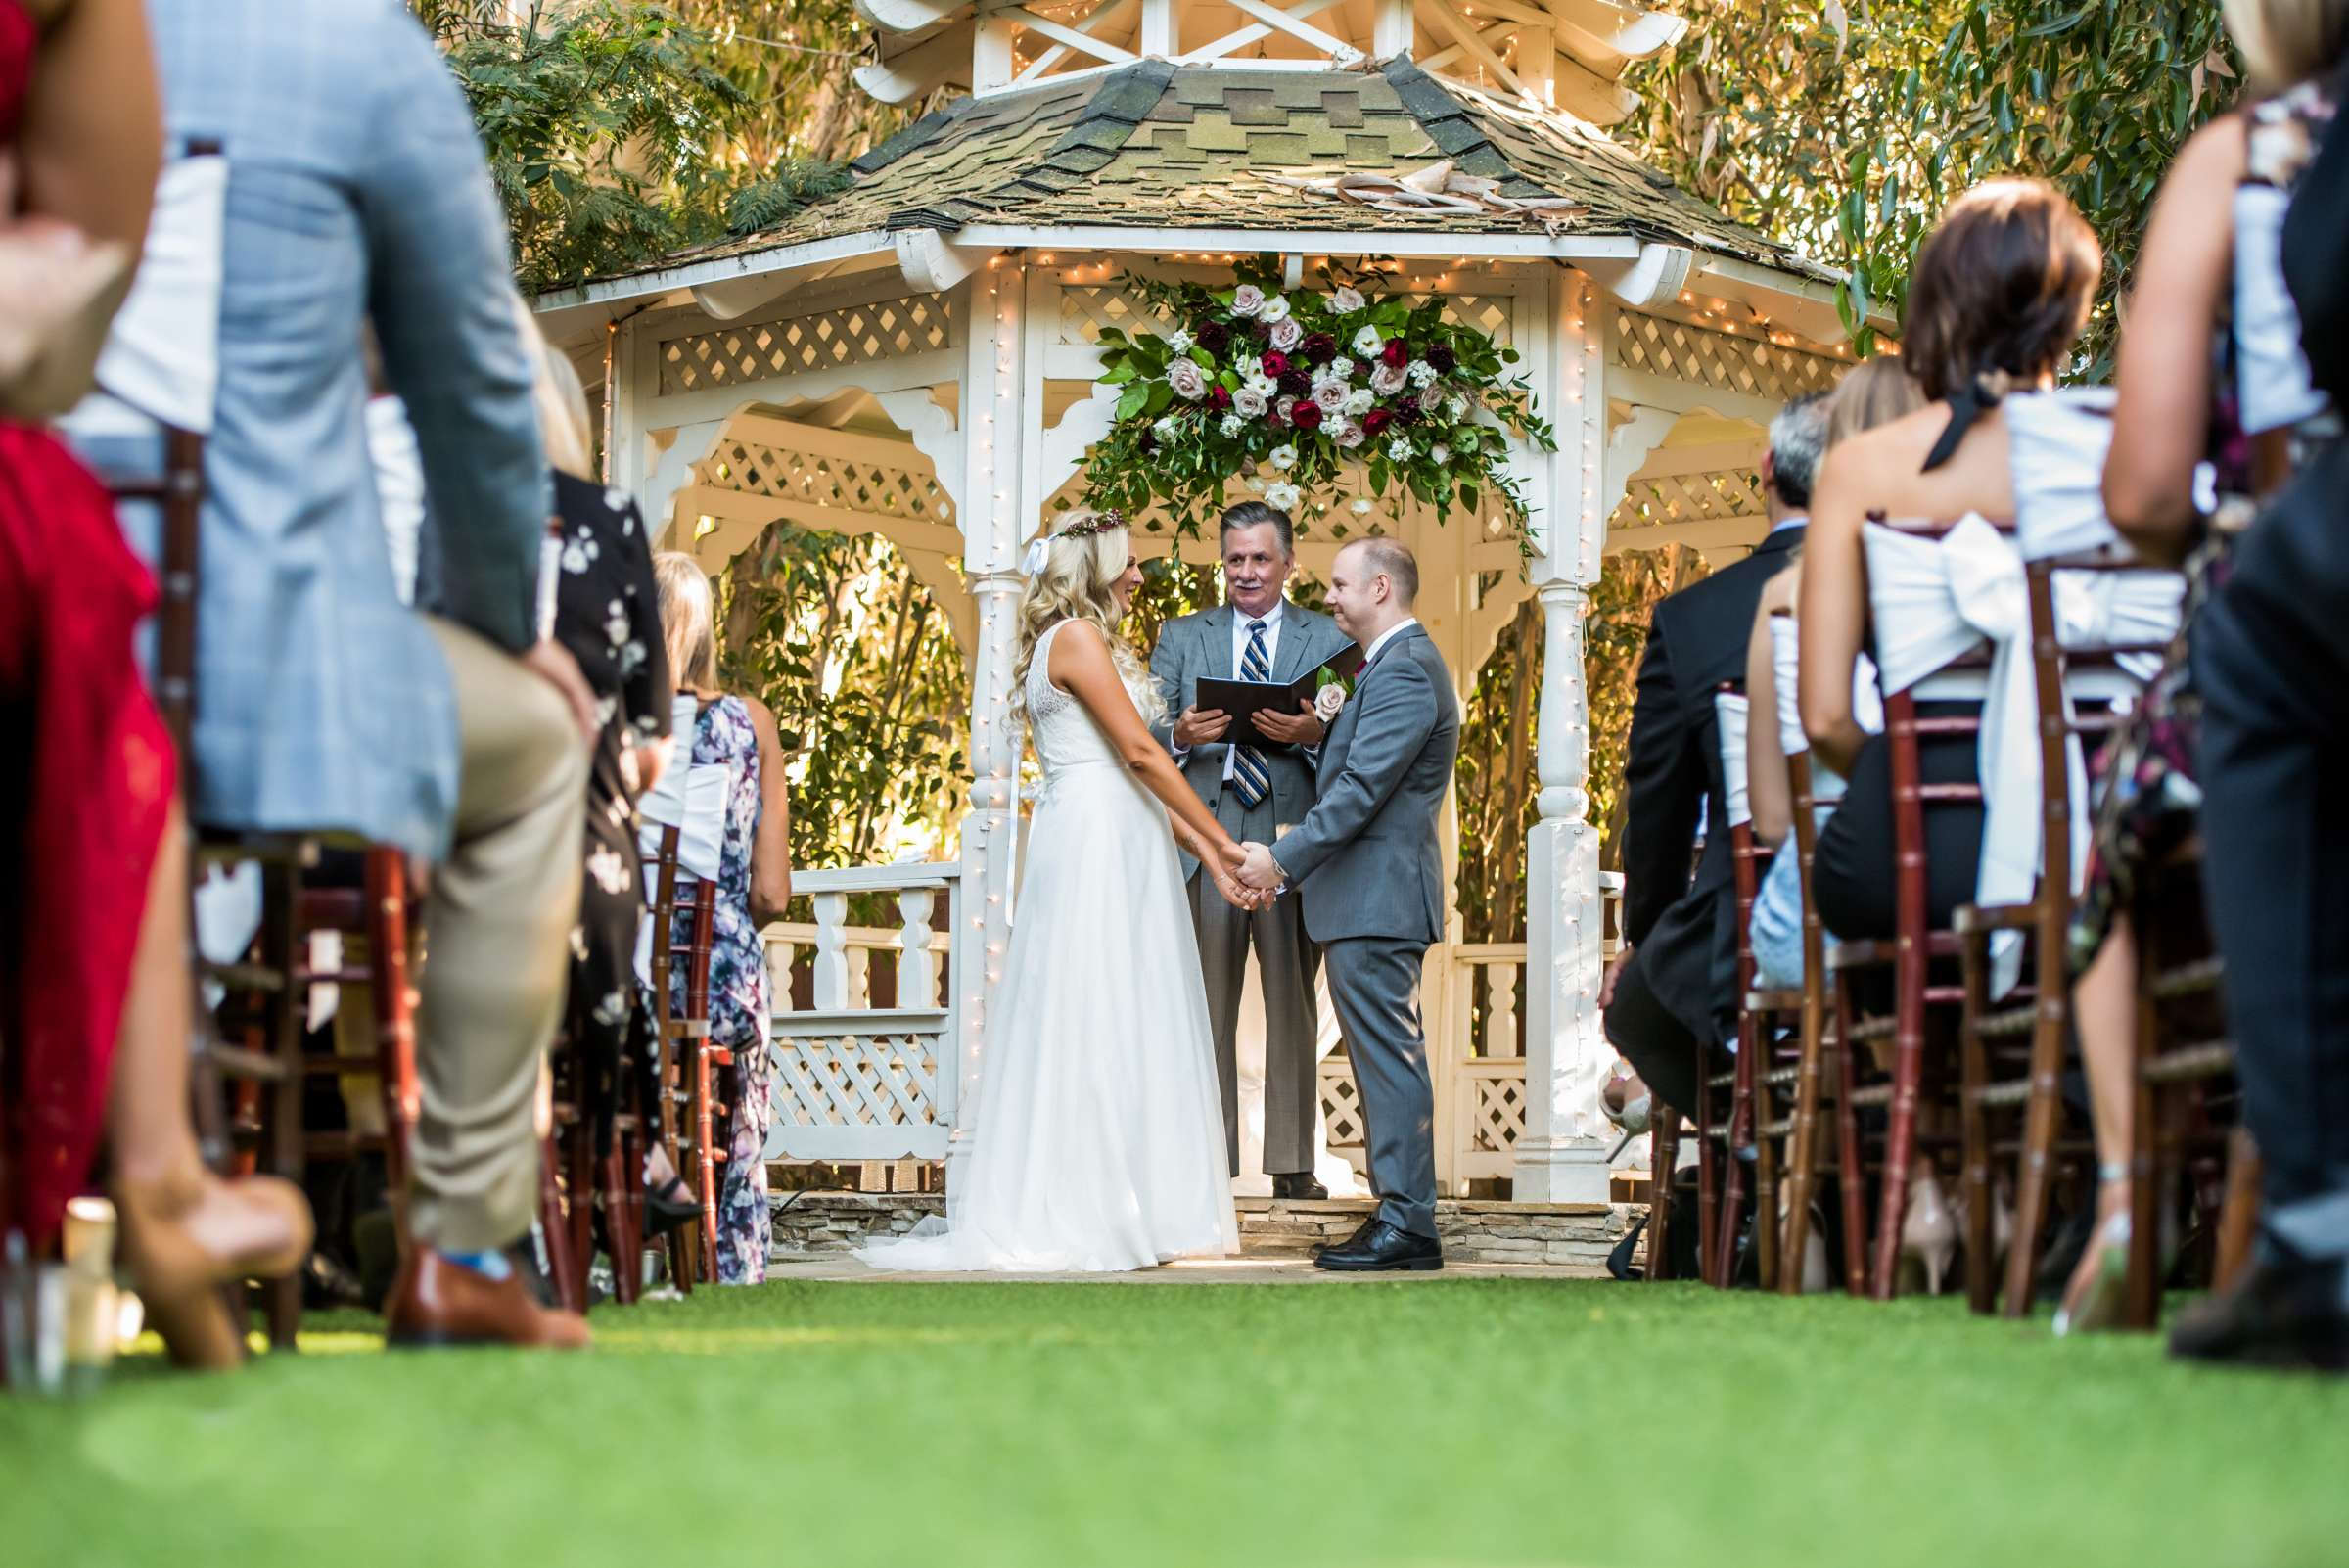 Twin Oaks House & Gardens Wedding Estate Wedding, Brittany and Sean Wedding Photo #86 by True Photography